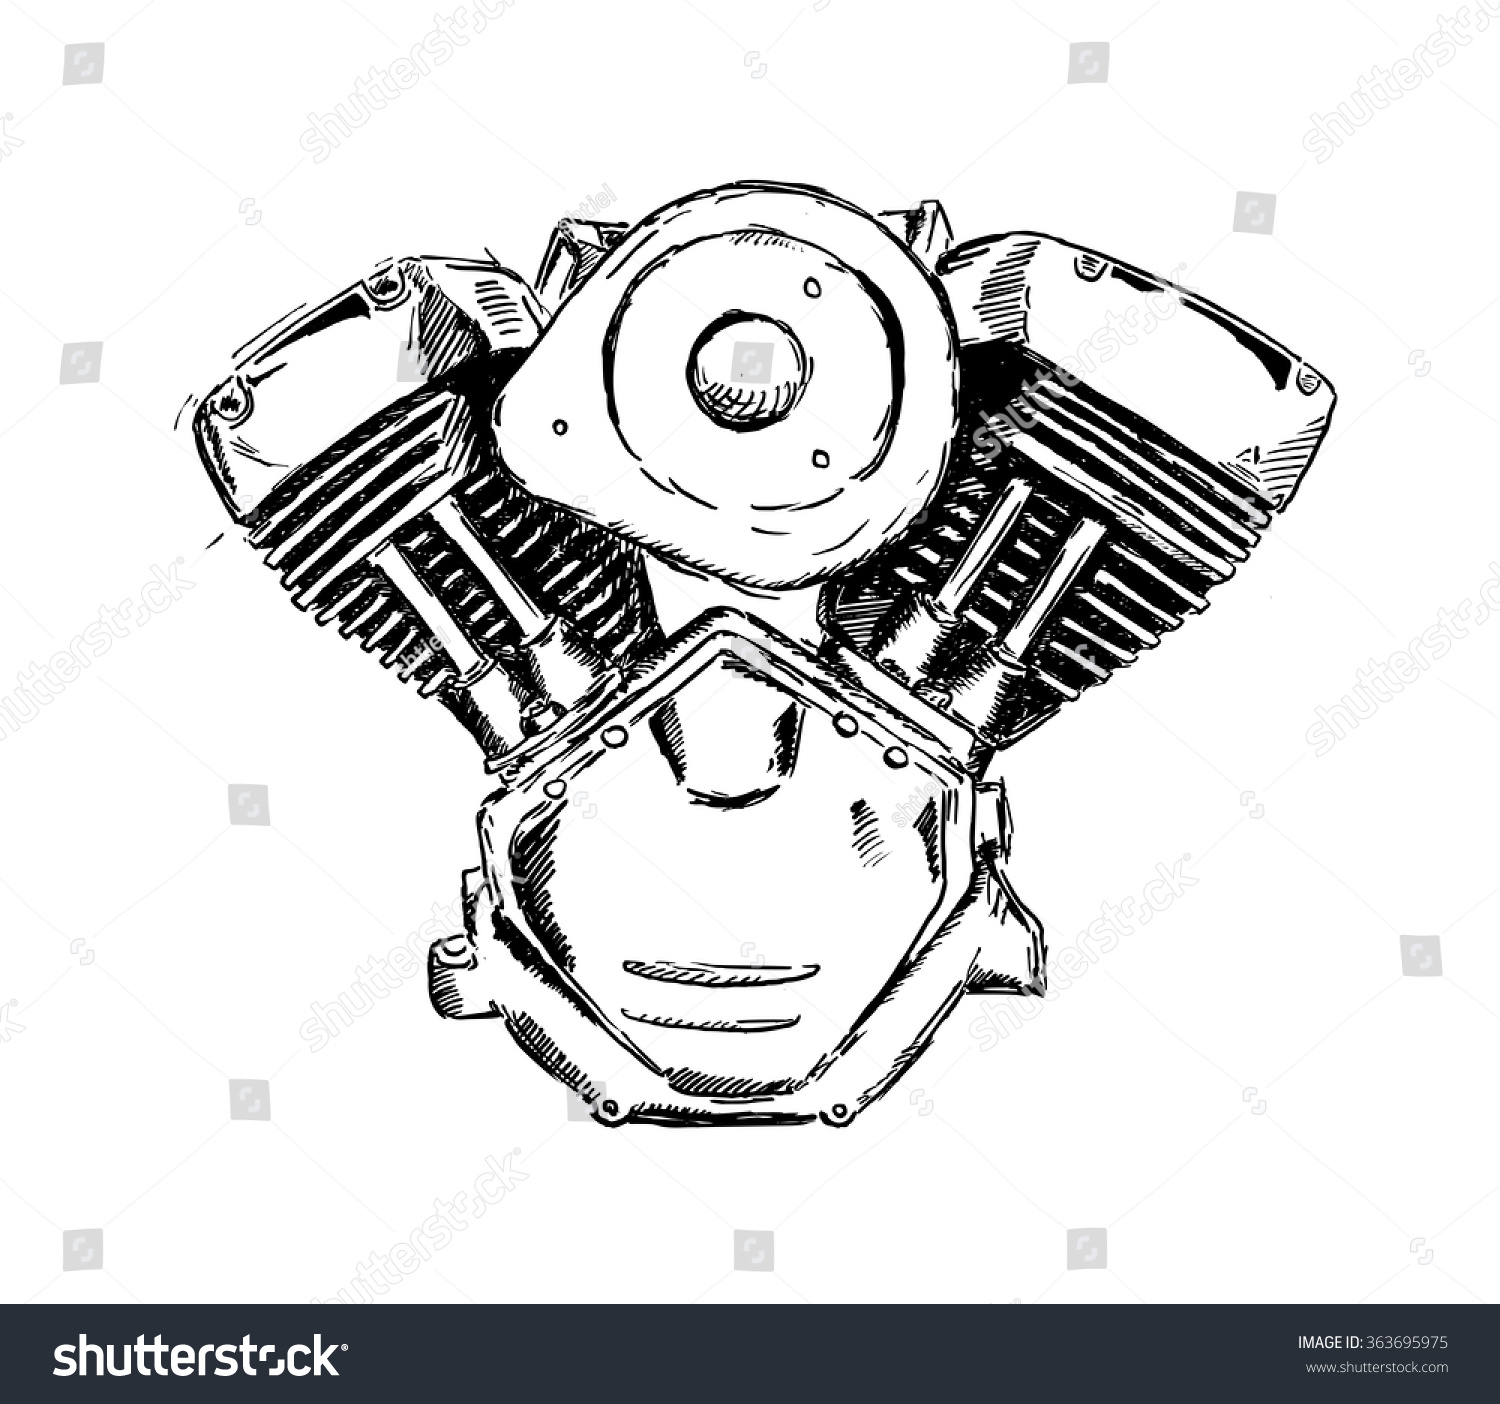 Royalty-free Vector ink sketch of motorcycle engine ...